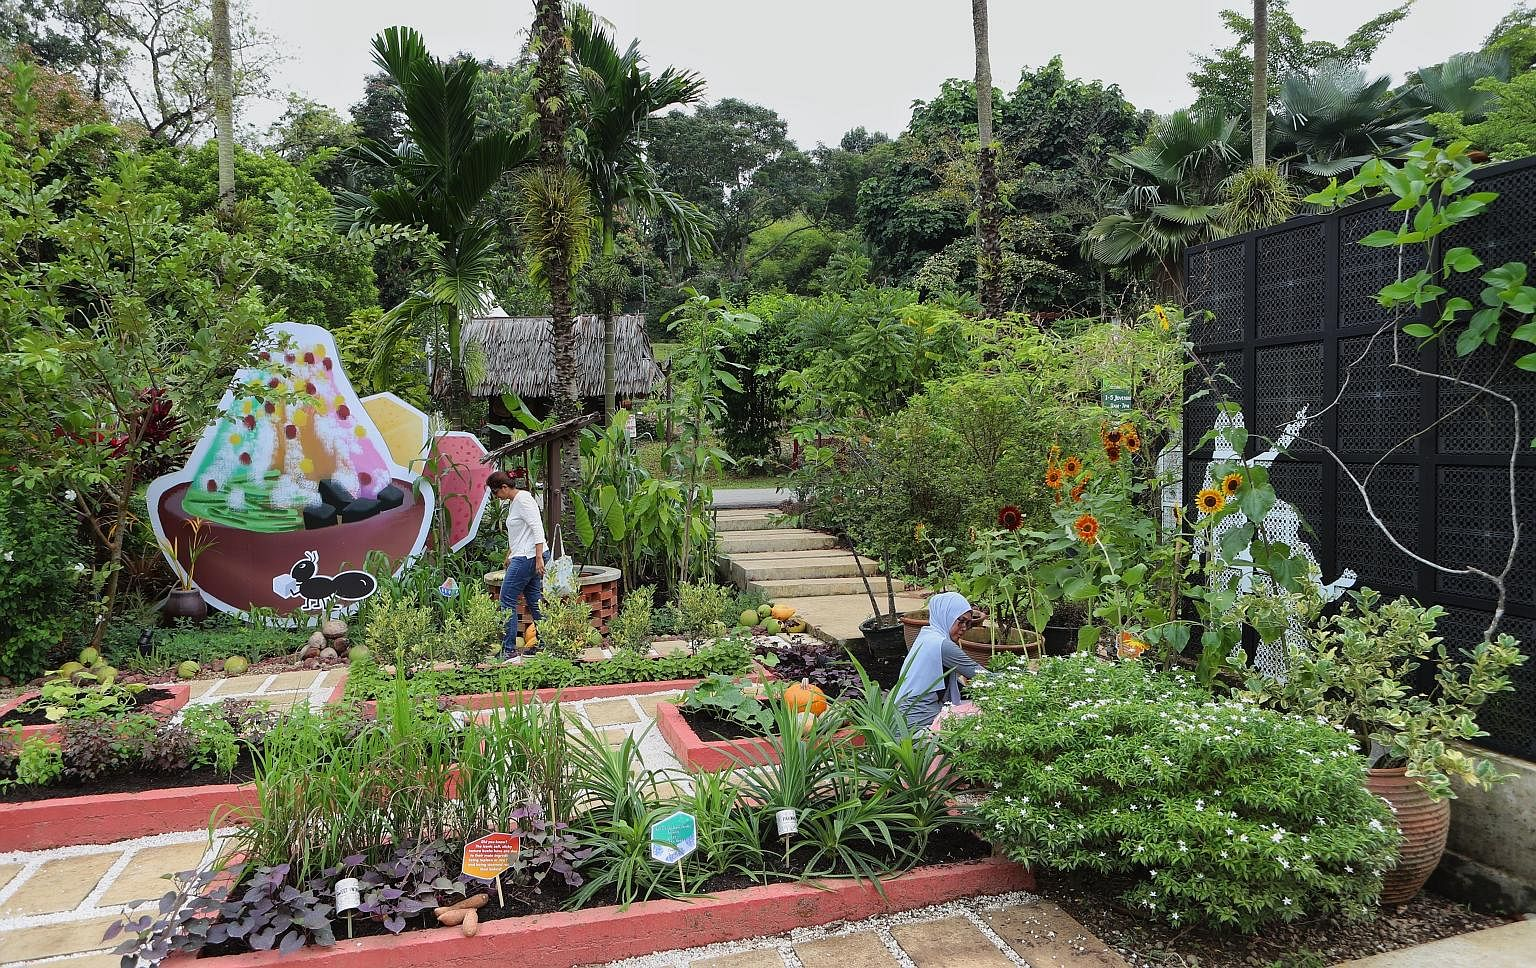 The Balik Kampung garden display focuses on local desserts such as ice kachang, featuring plants that produce the ingredients that go into them. The centrepiece at the festival, held from today to Sunday, is a 3m-tall, over 200kg crimson bird made of